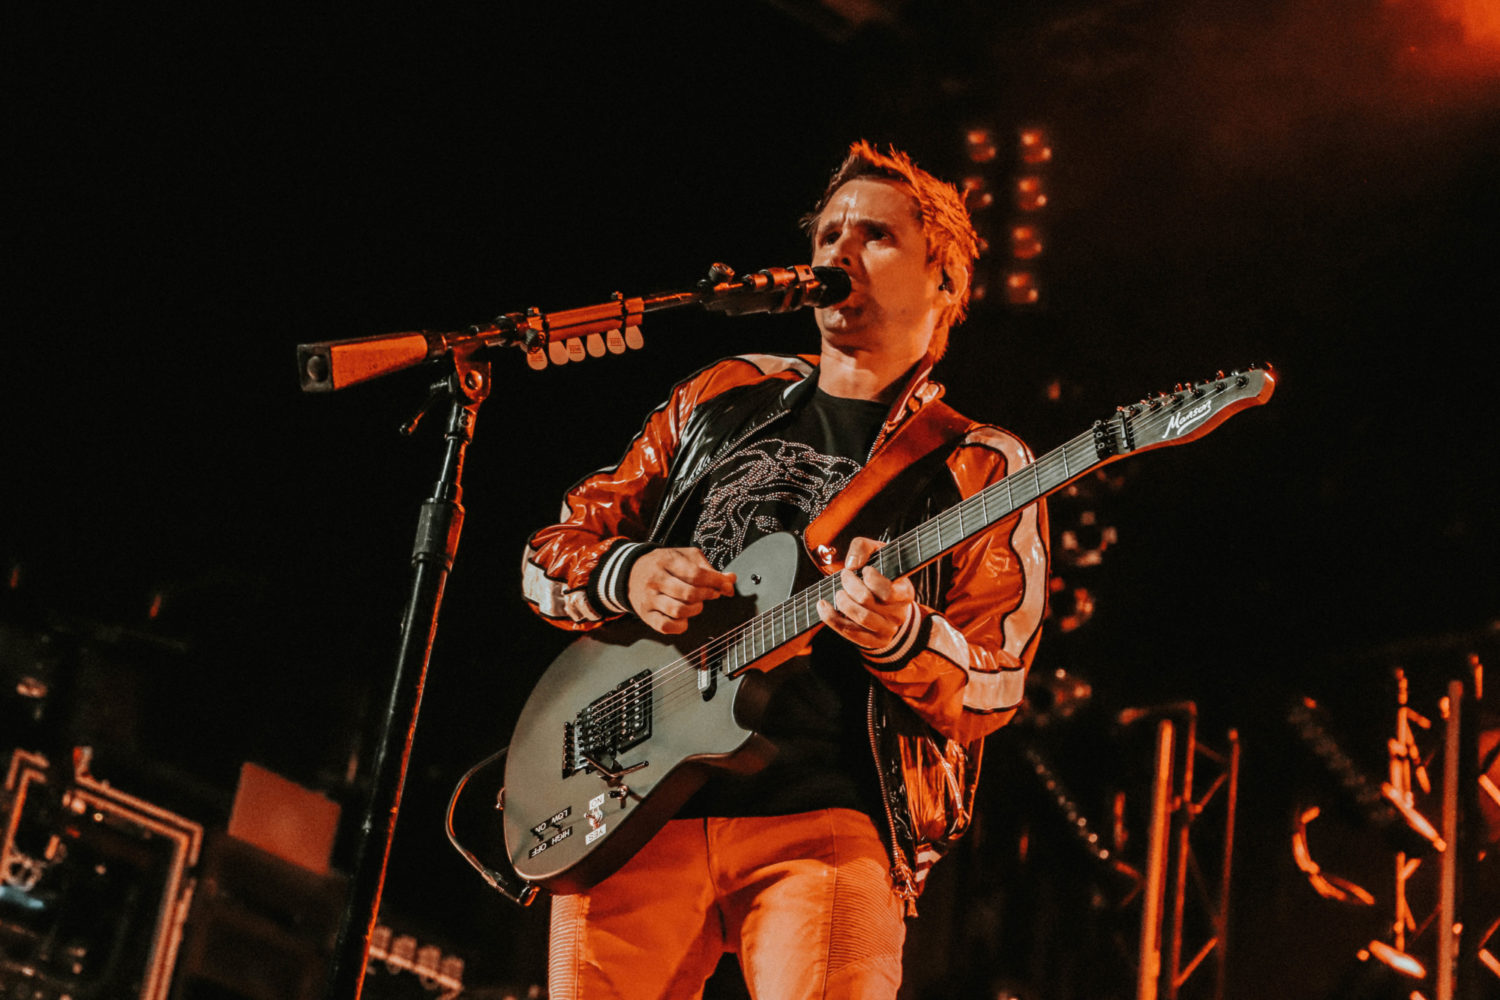 Muse announce massive world tour for 2019